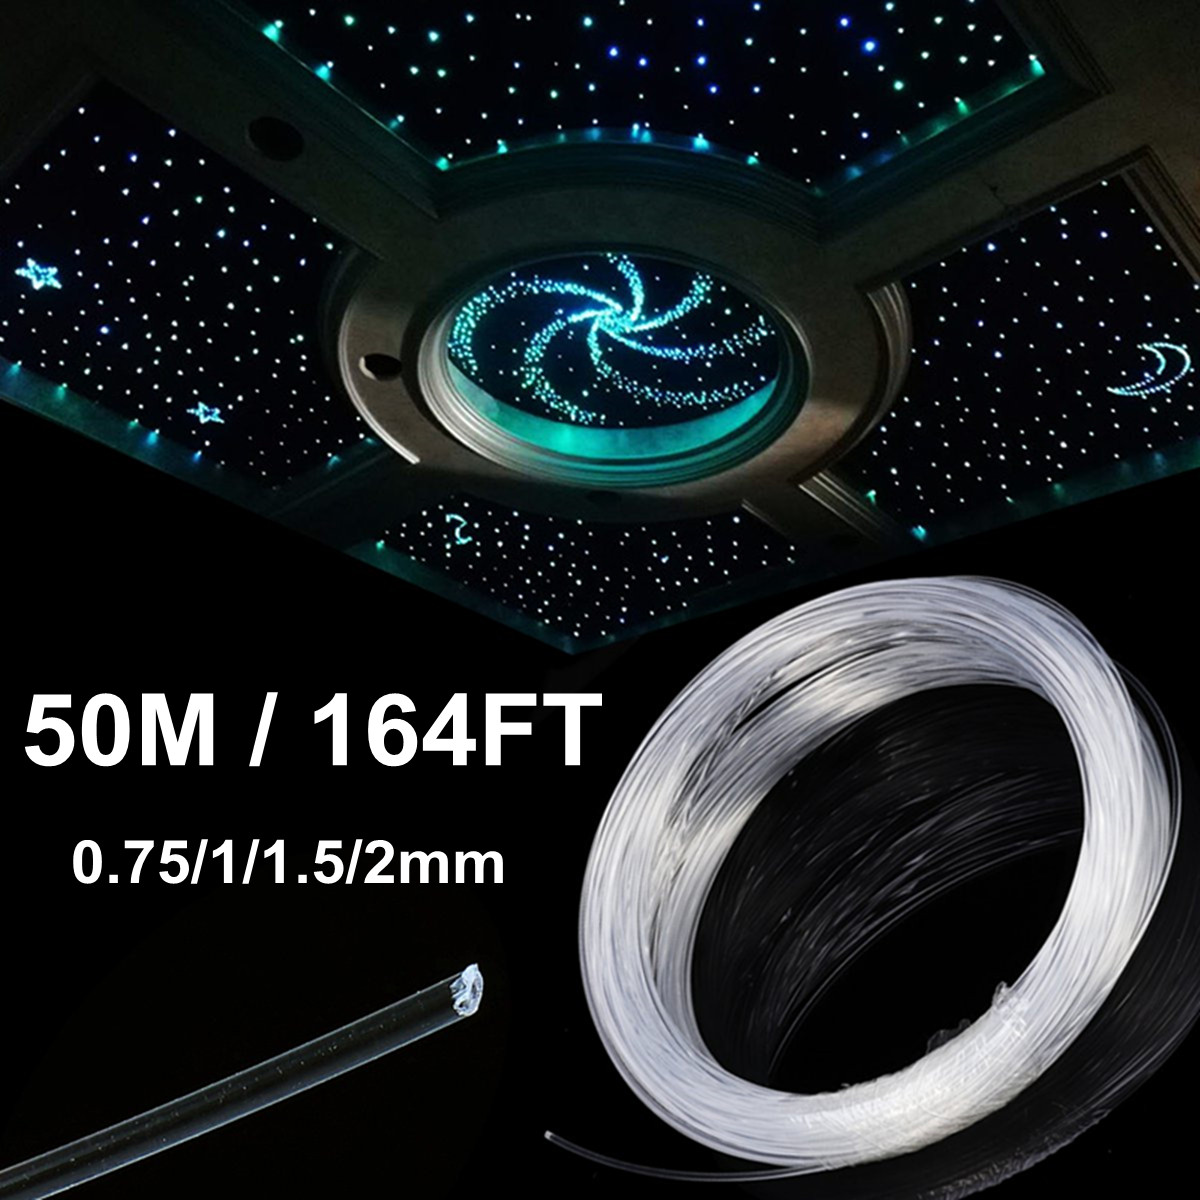 50M PMMA Plastic Clear Optic Fiber Lights Opitcal Cable End Grow Car LED Lighting Decoration Commercial Light 0.75/1.0/1.5/2.0mm